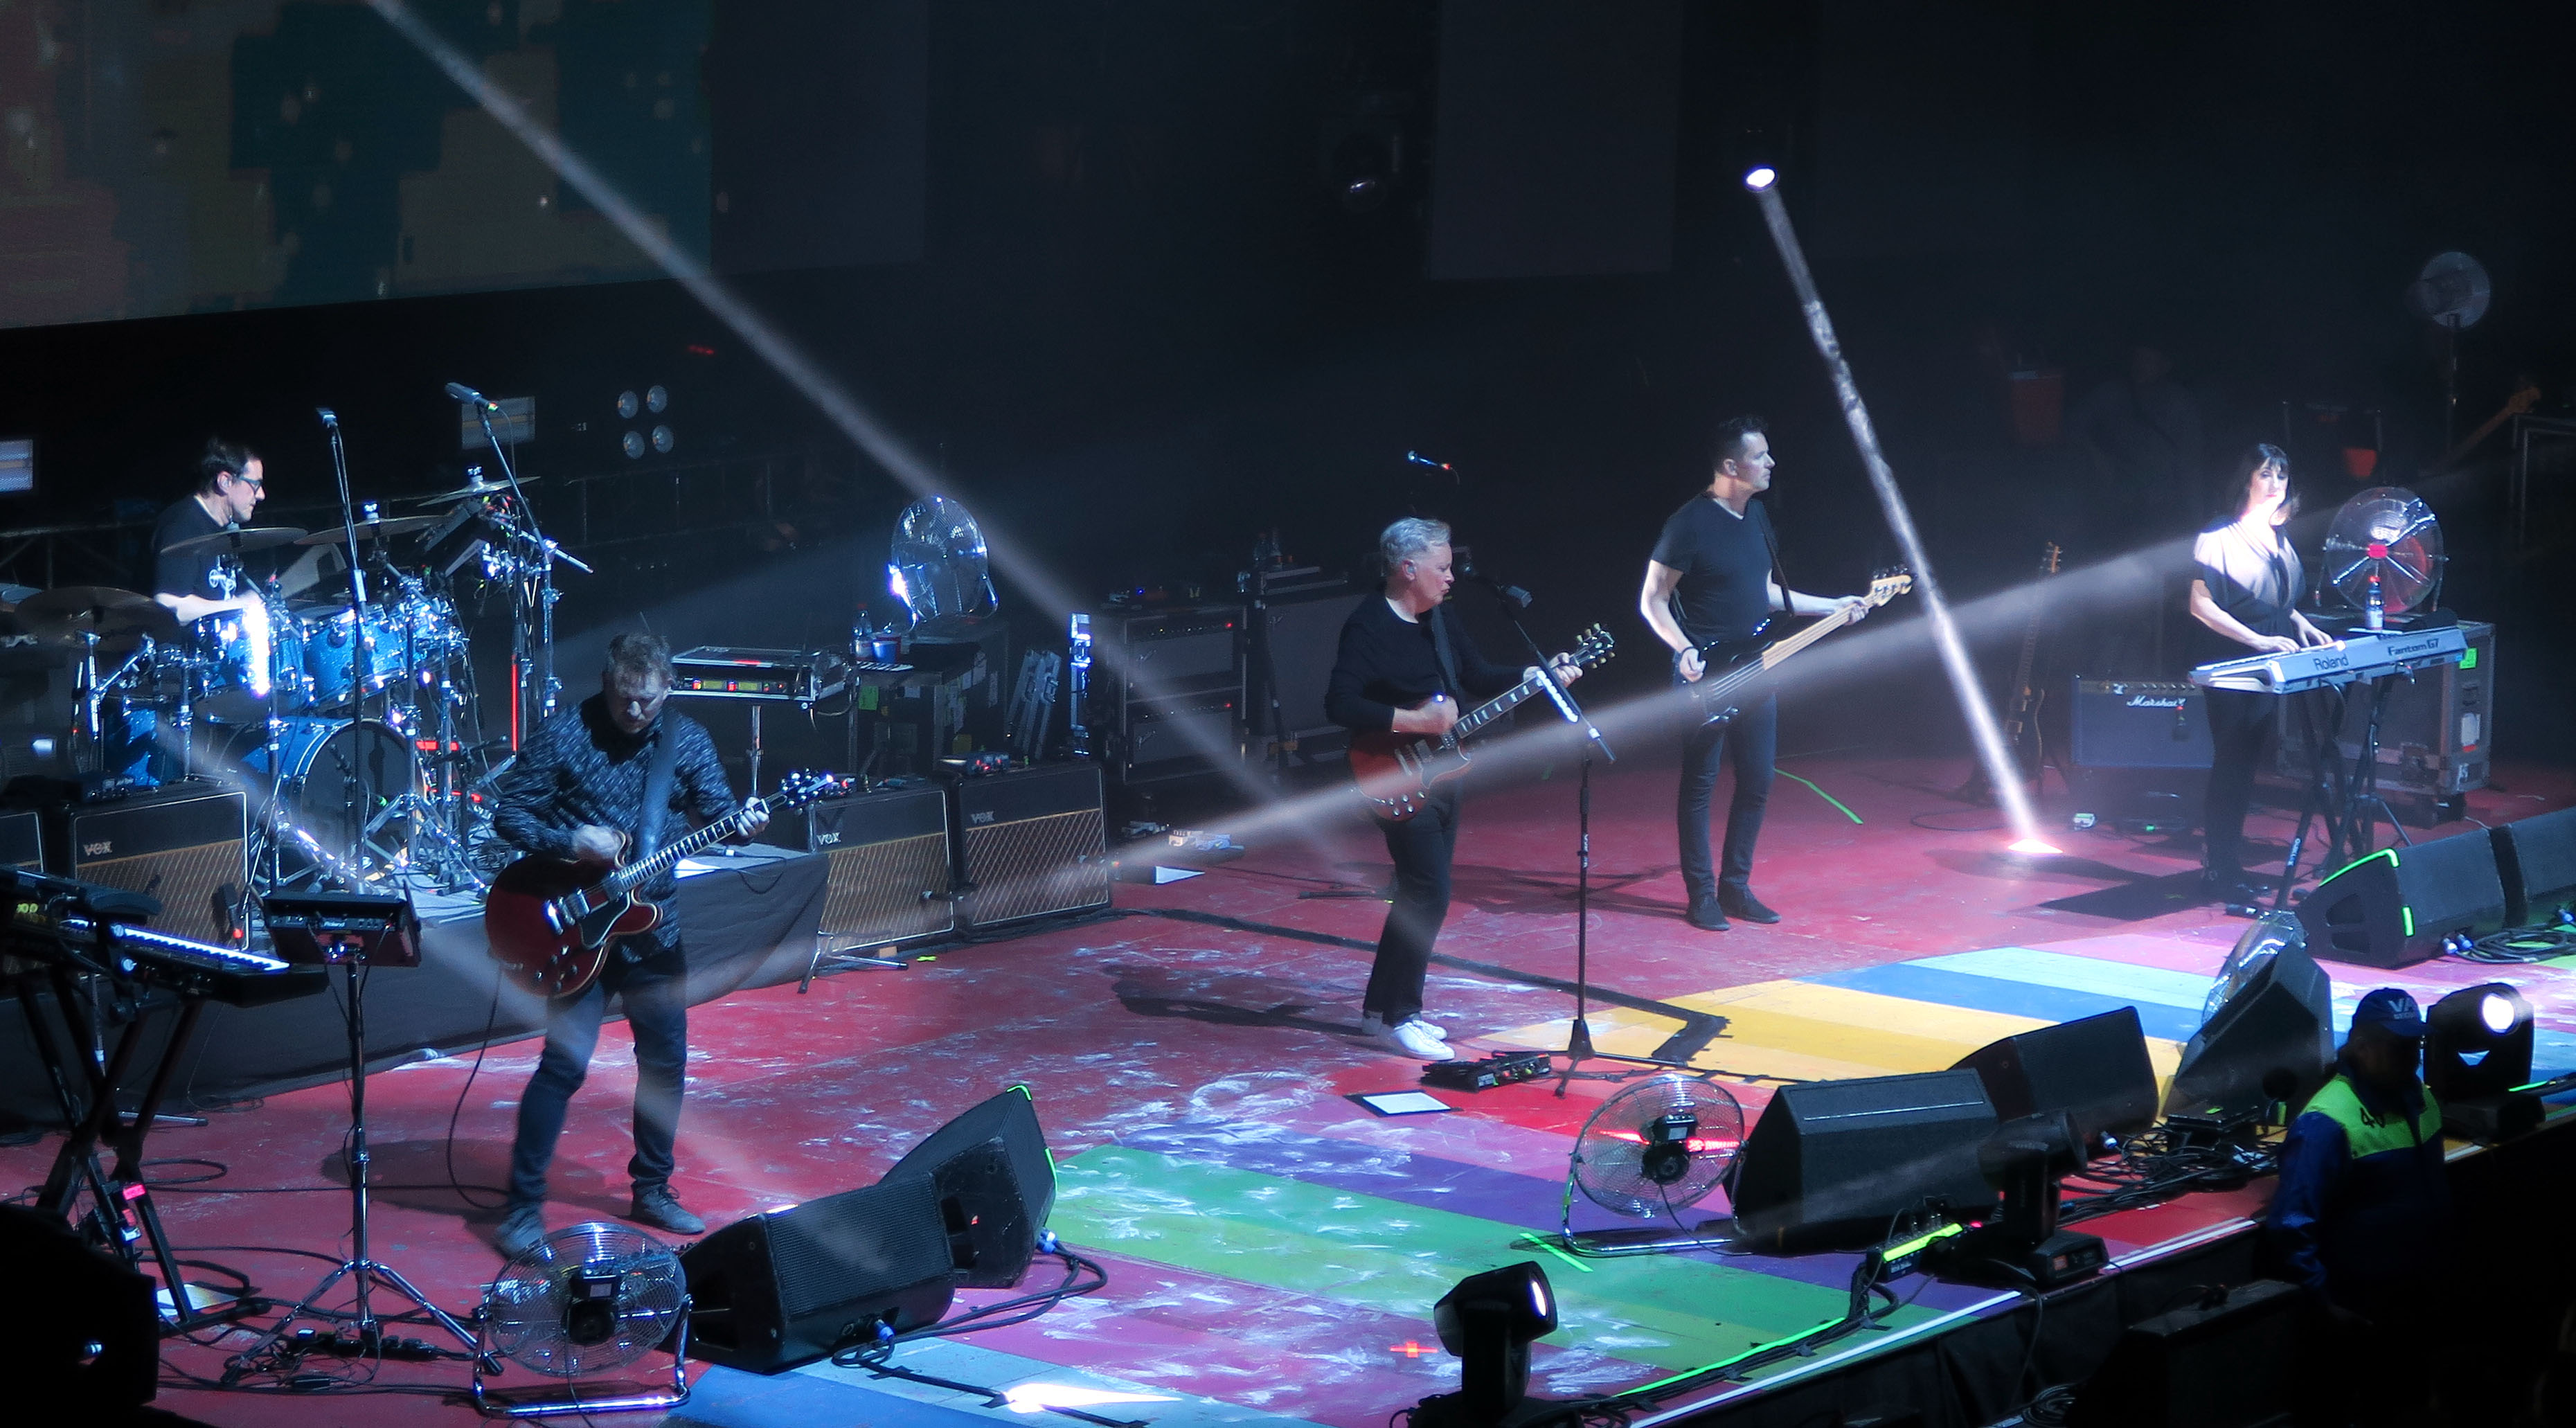 New Order Band Wikipedia B a e there's a storm in the sky passing over. new order band wikipedia